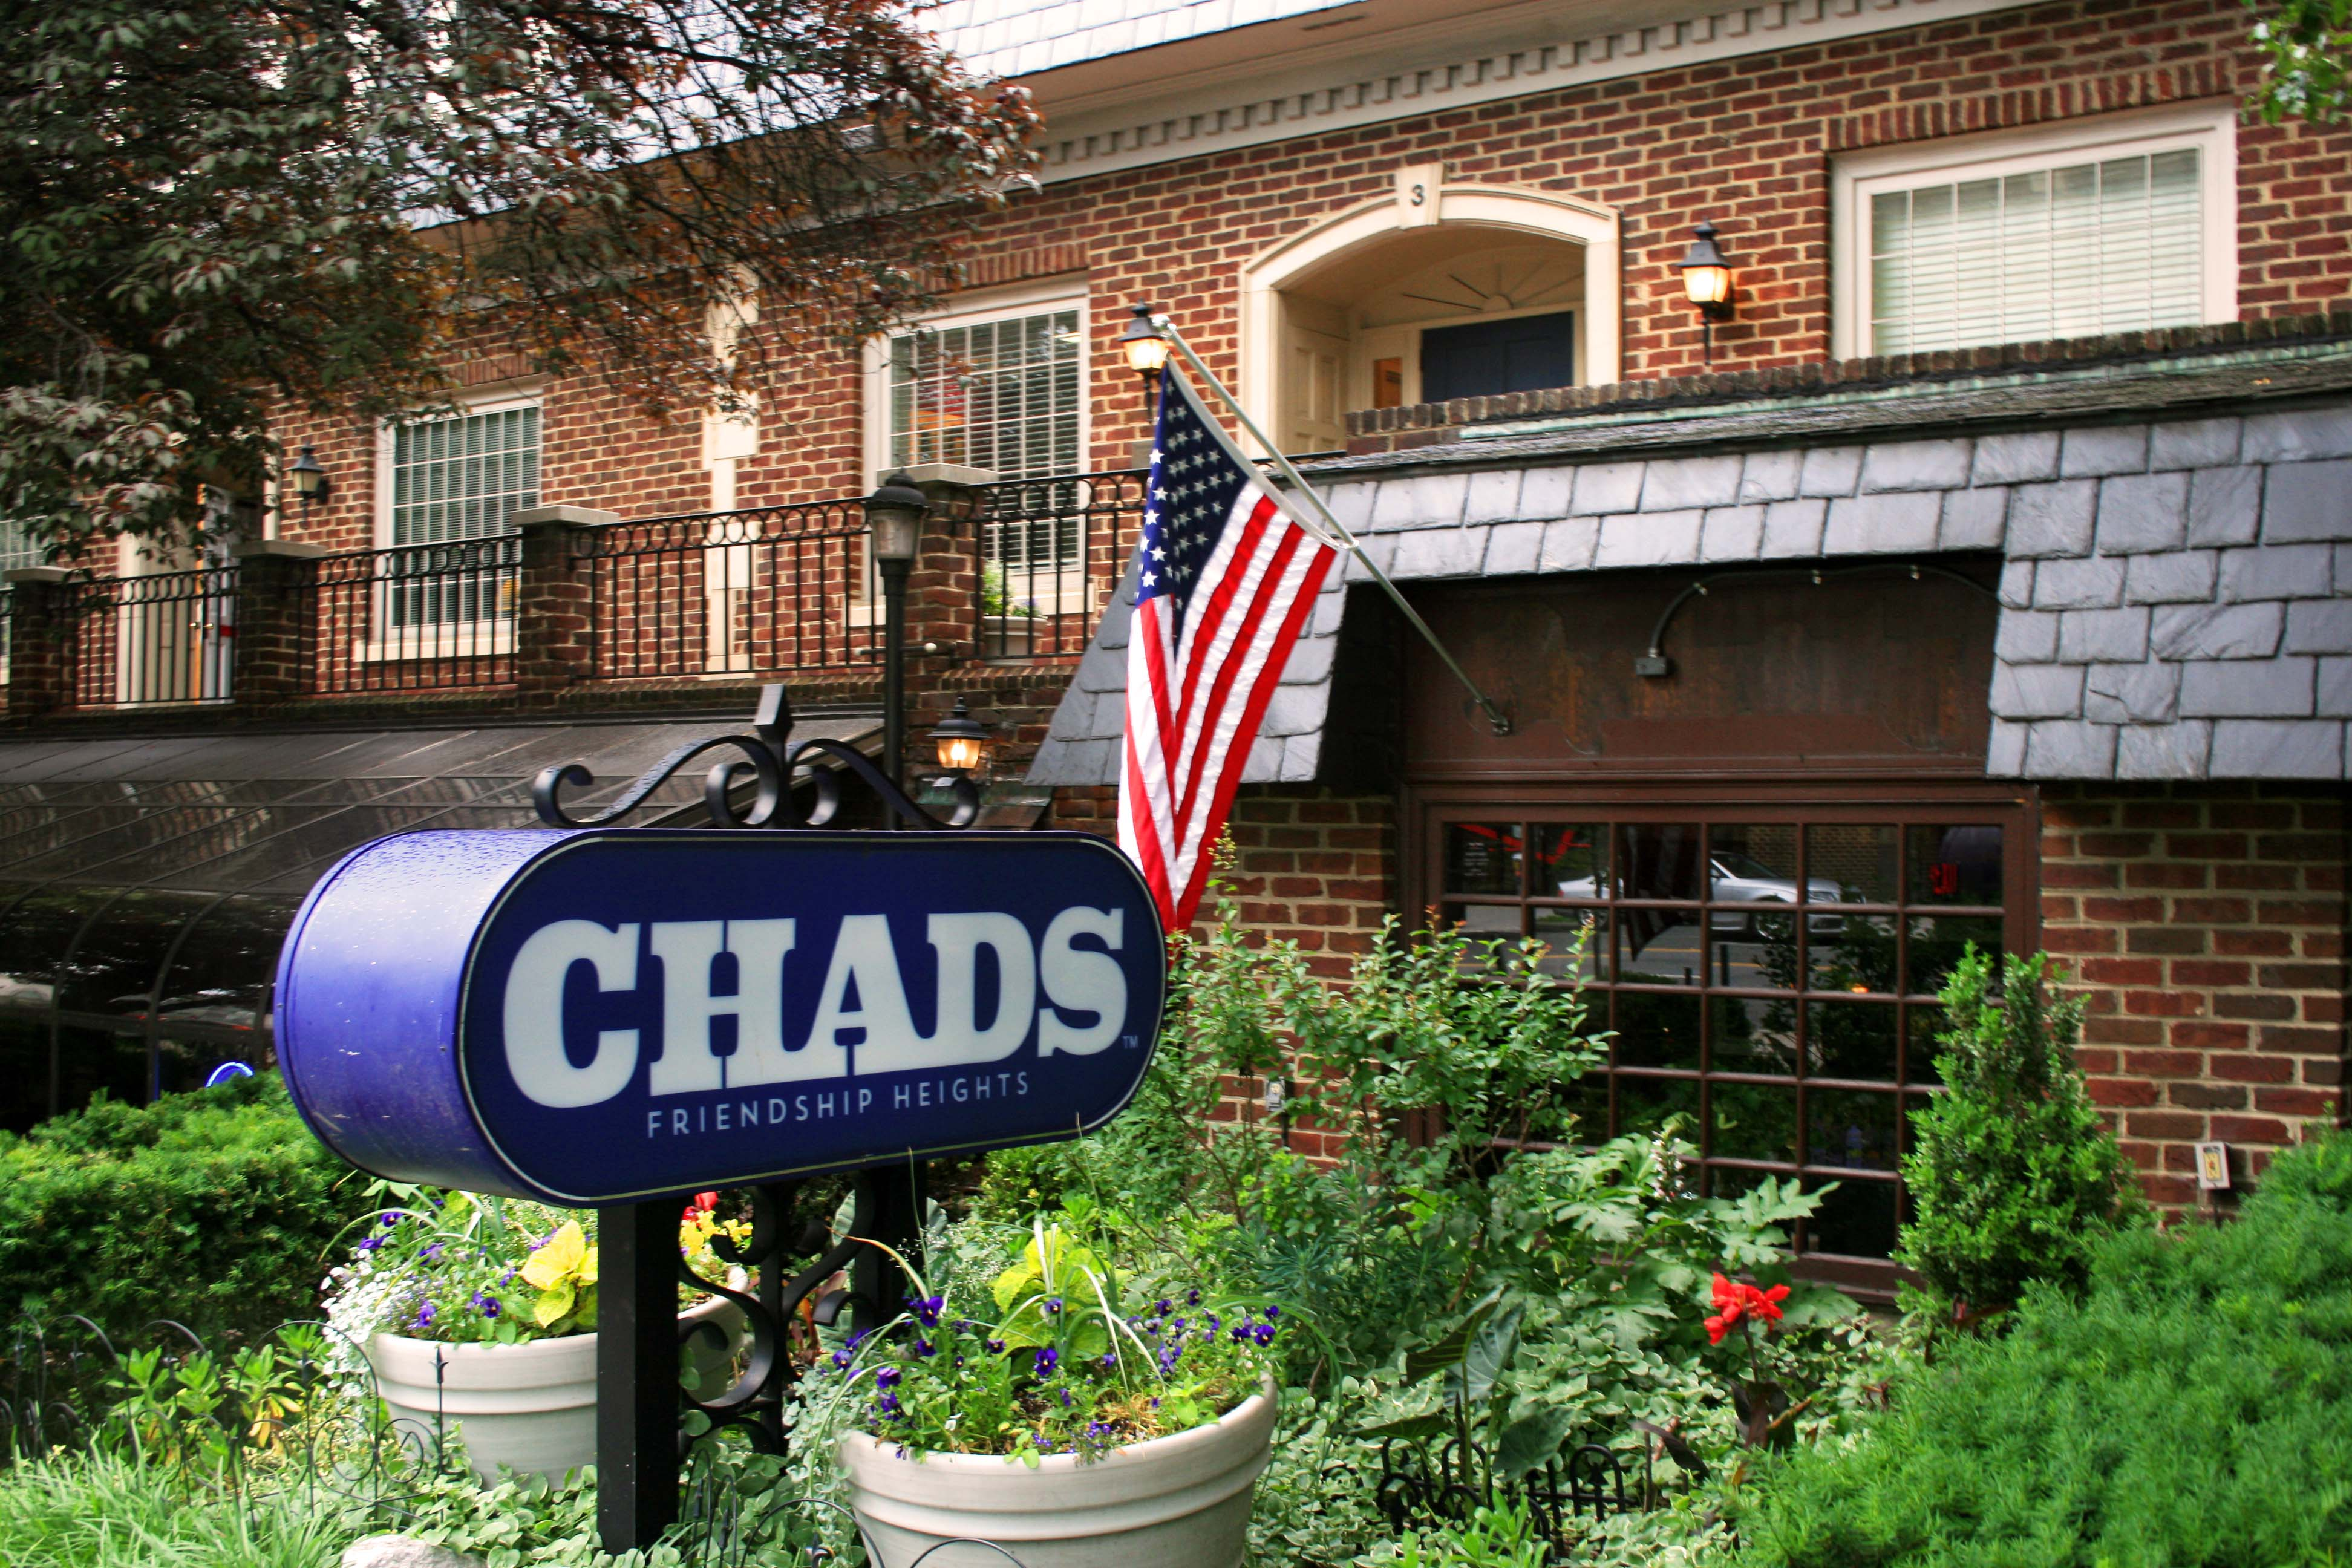 Chad's Friendship Heights